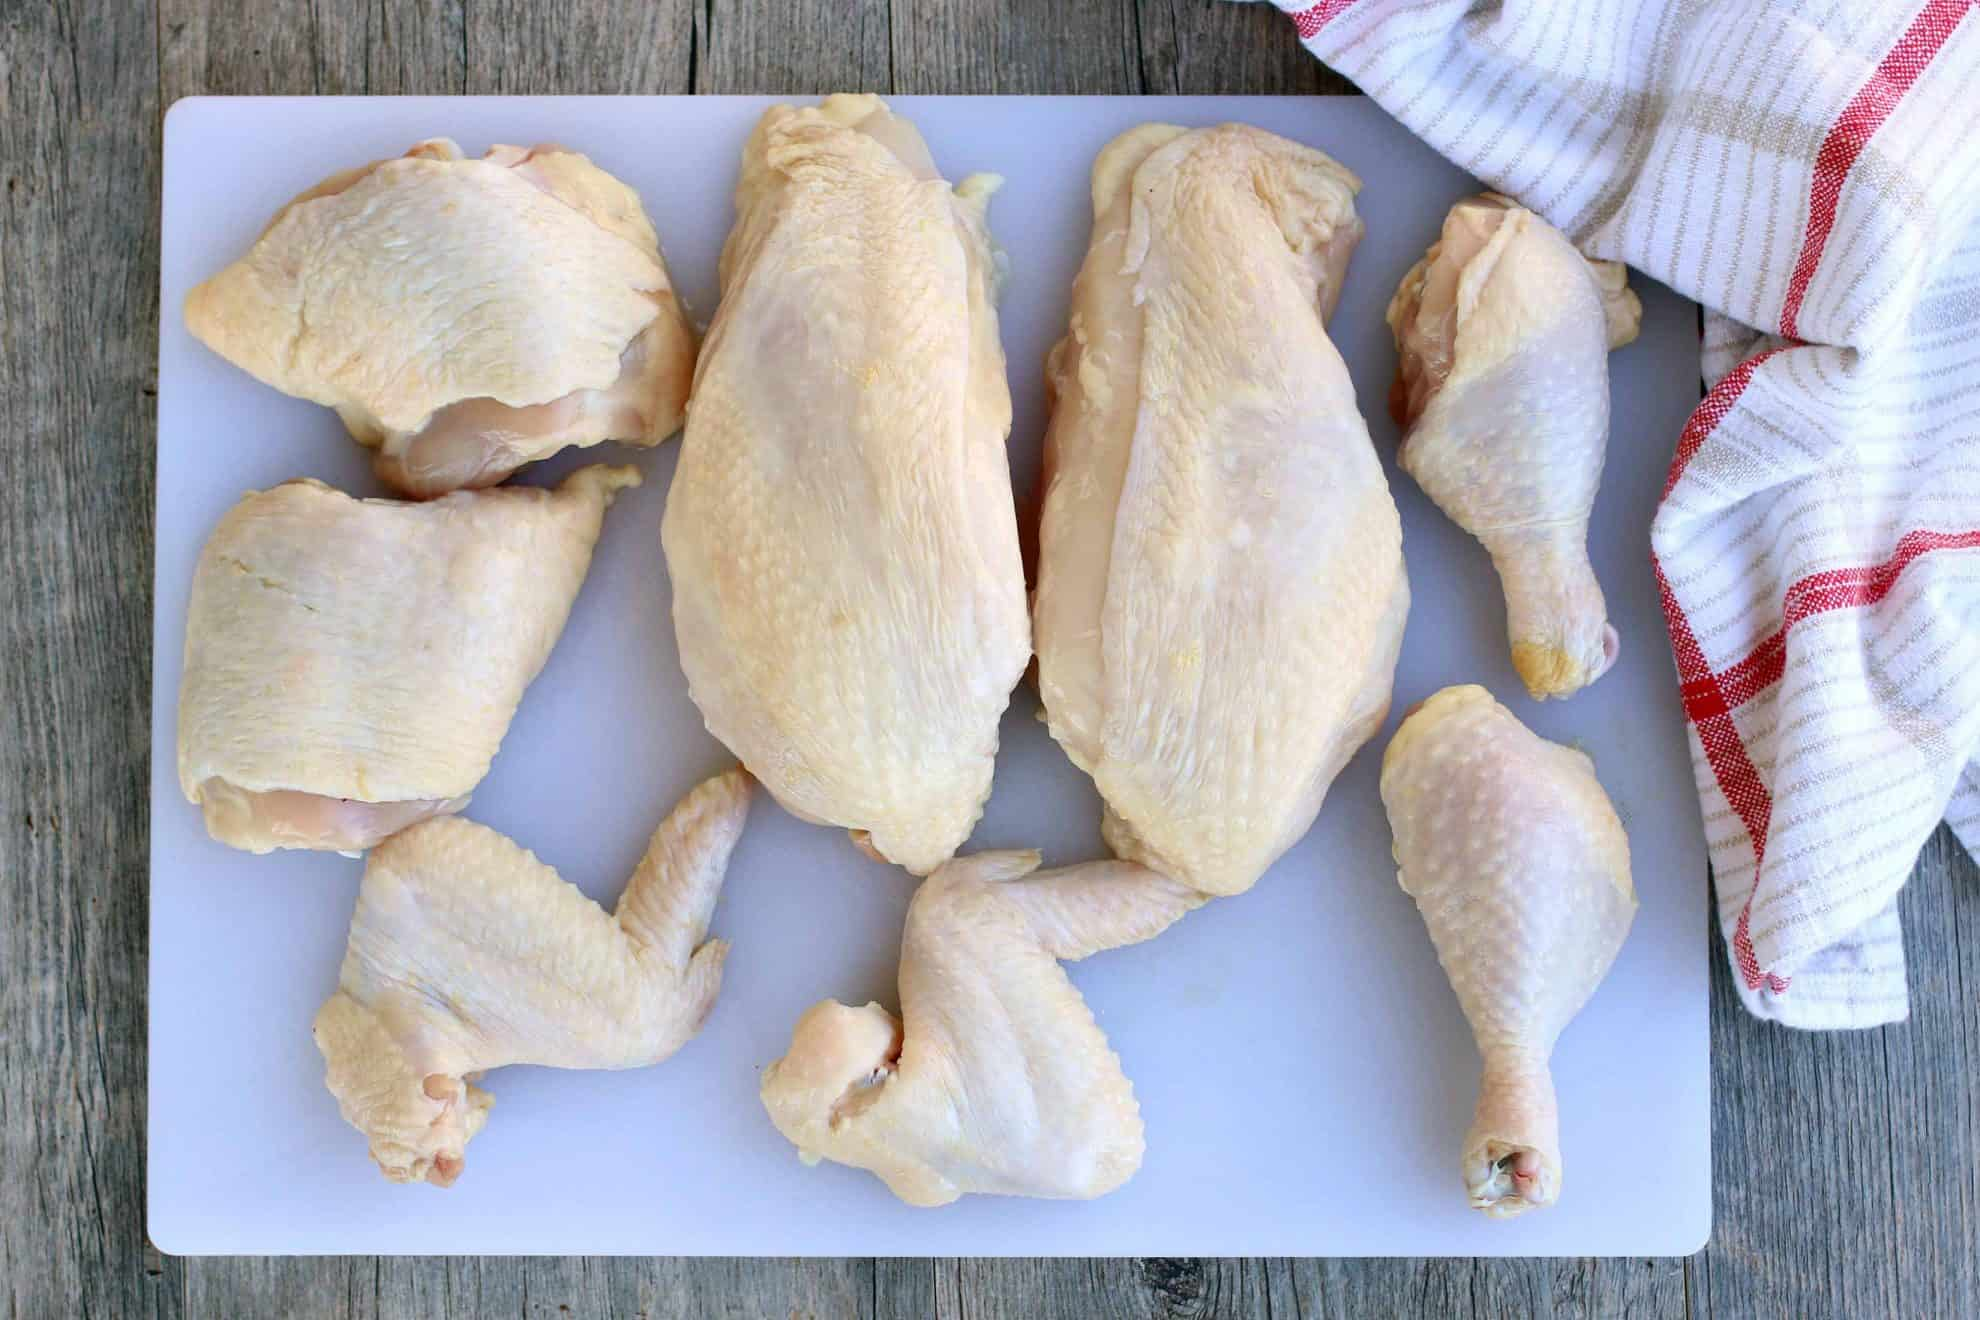 How to cut a whole chicken into individual cuts to save money.